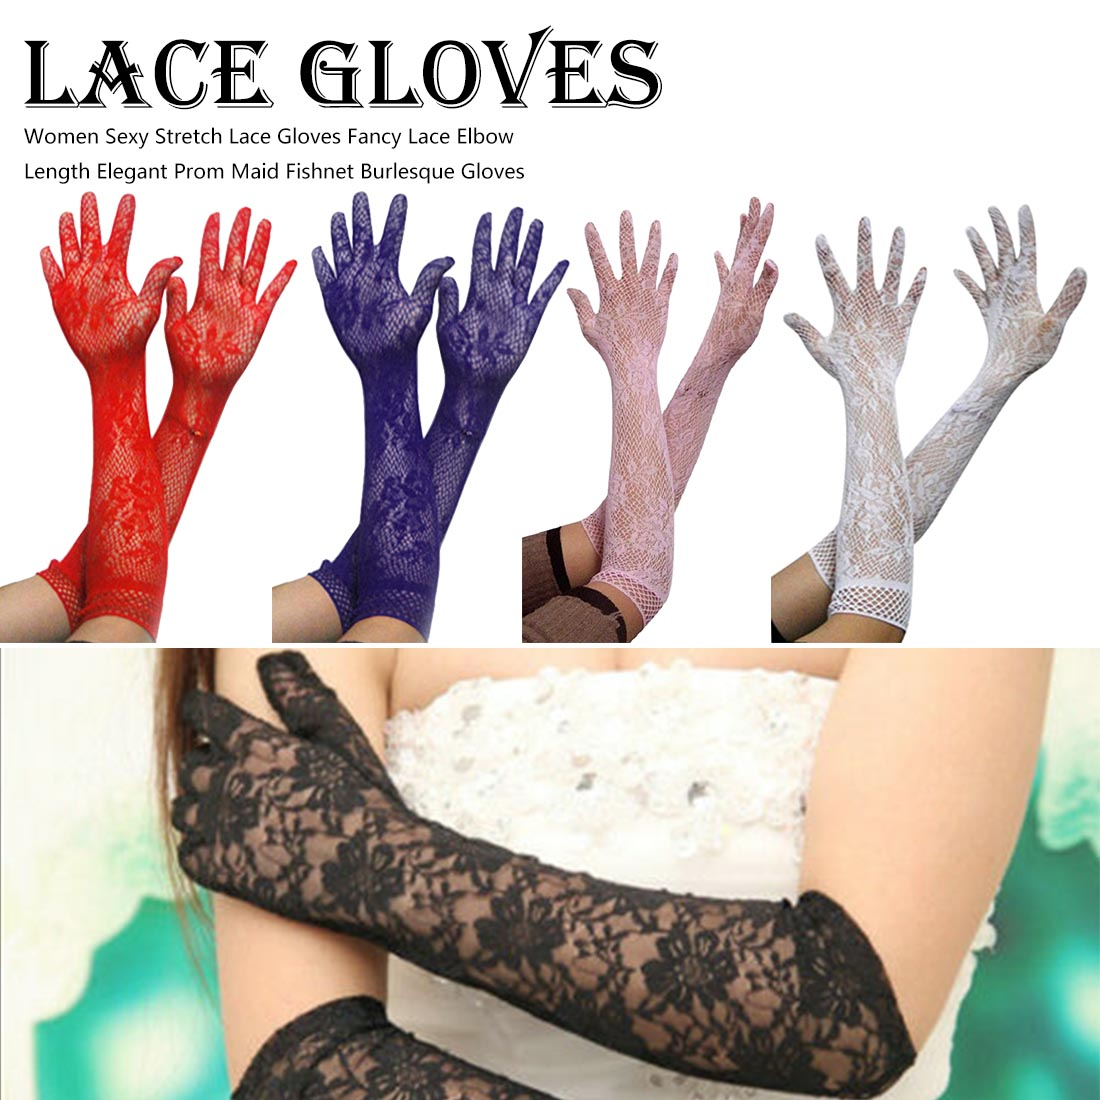 Elegant Prom Maid Fishnet Burlesque Gloves Women Sexy Stretch Lace Gloves Fancy Lace Elbow Length